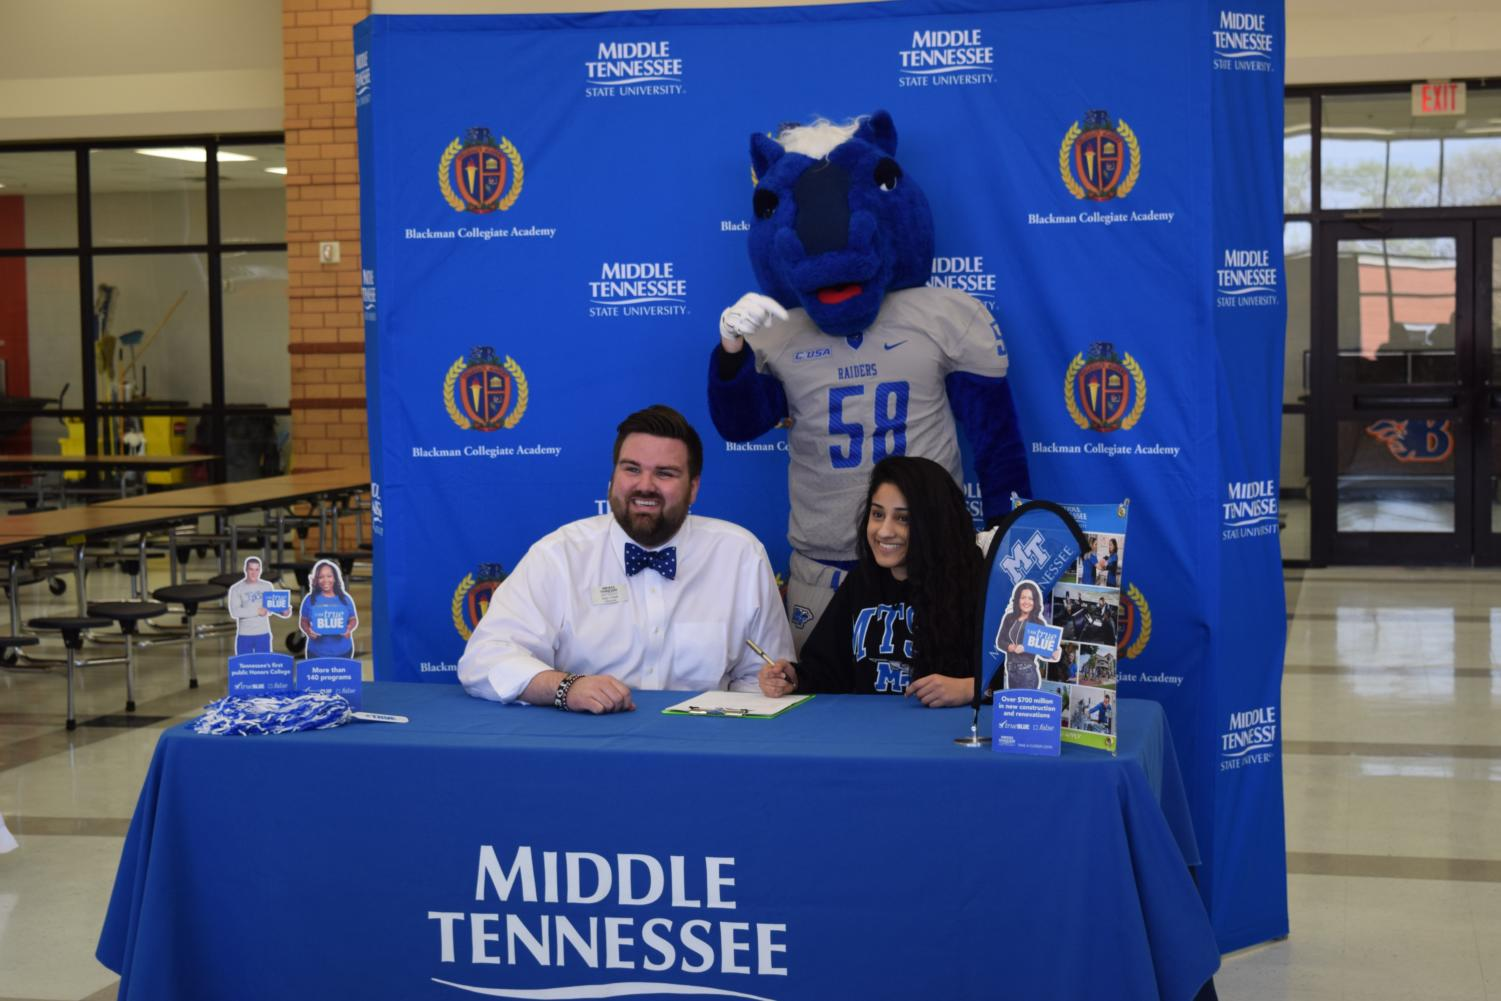 Rija+Asim+will+attend++Middle+Tennessee+State+University+in+the+fall.